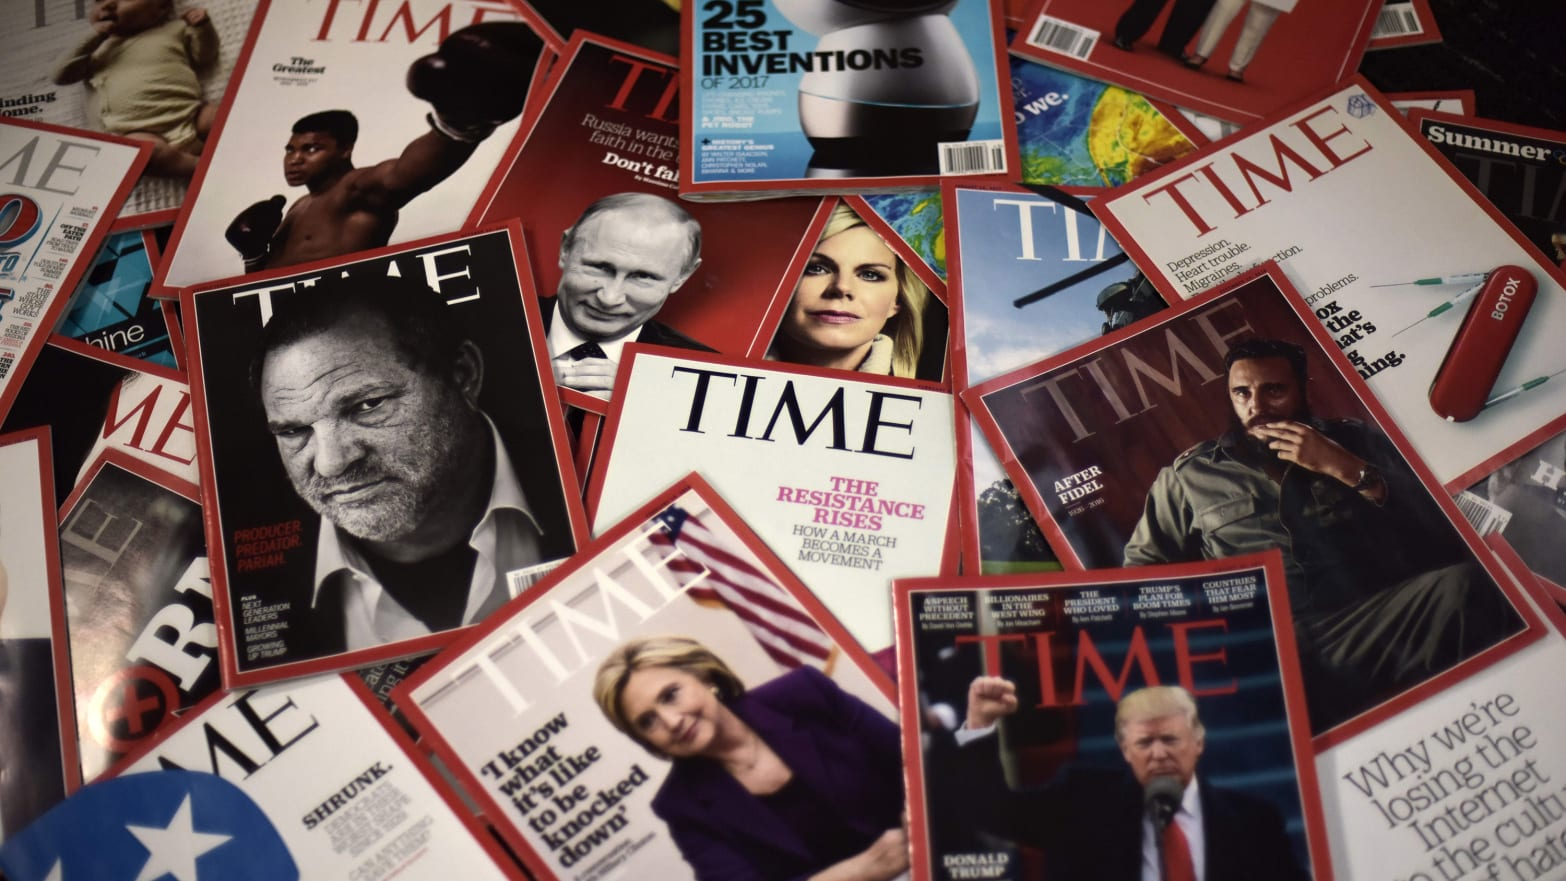 'Time' Magazine's Digital Staff Demands to Join the Union